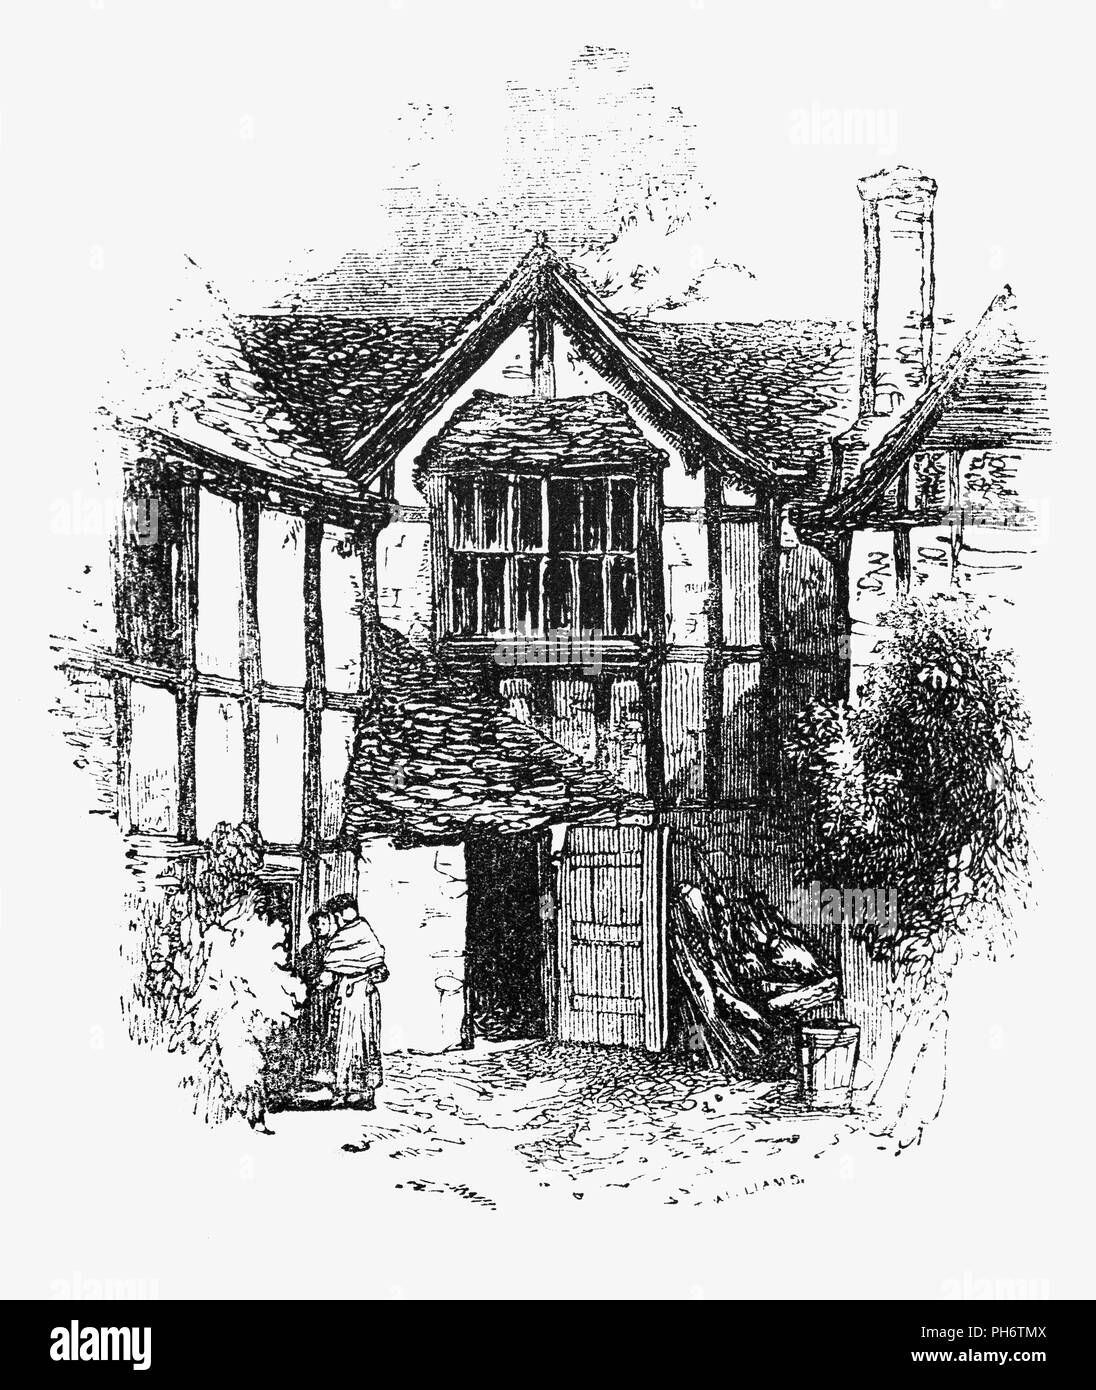 A Tudor house courtyard in Evesham, a market town in Worcestershire, England In a typical Tudor house the weight of the house was carried on a wooden frame. The space between the wooden beams was filled in with either brick or plaster. Brick was costly so plaster was used as the infill between the beams in smaller houses. The plaster was whitewashed, giving houses their distinctive black-and-white appearance. - Stock Image